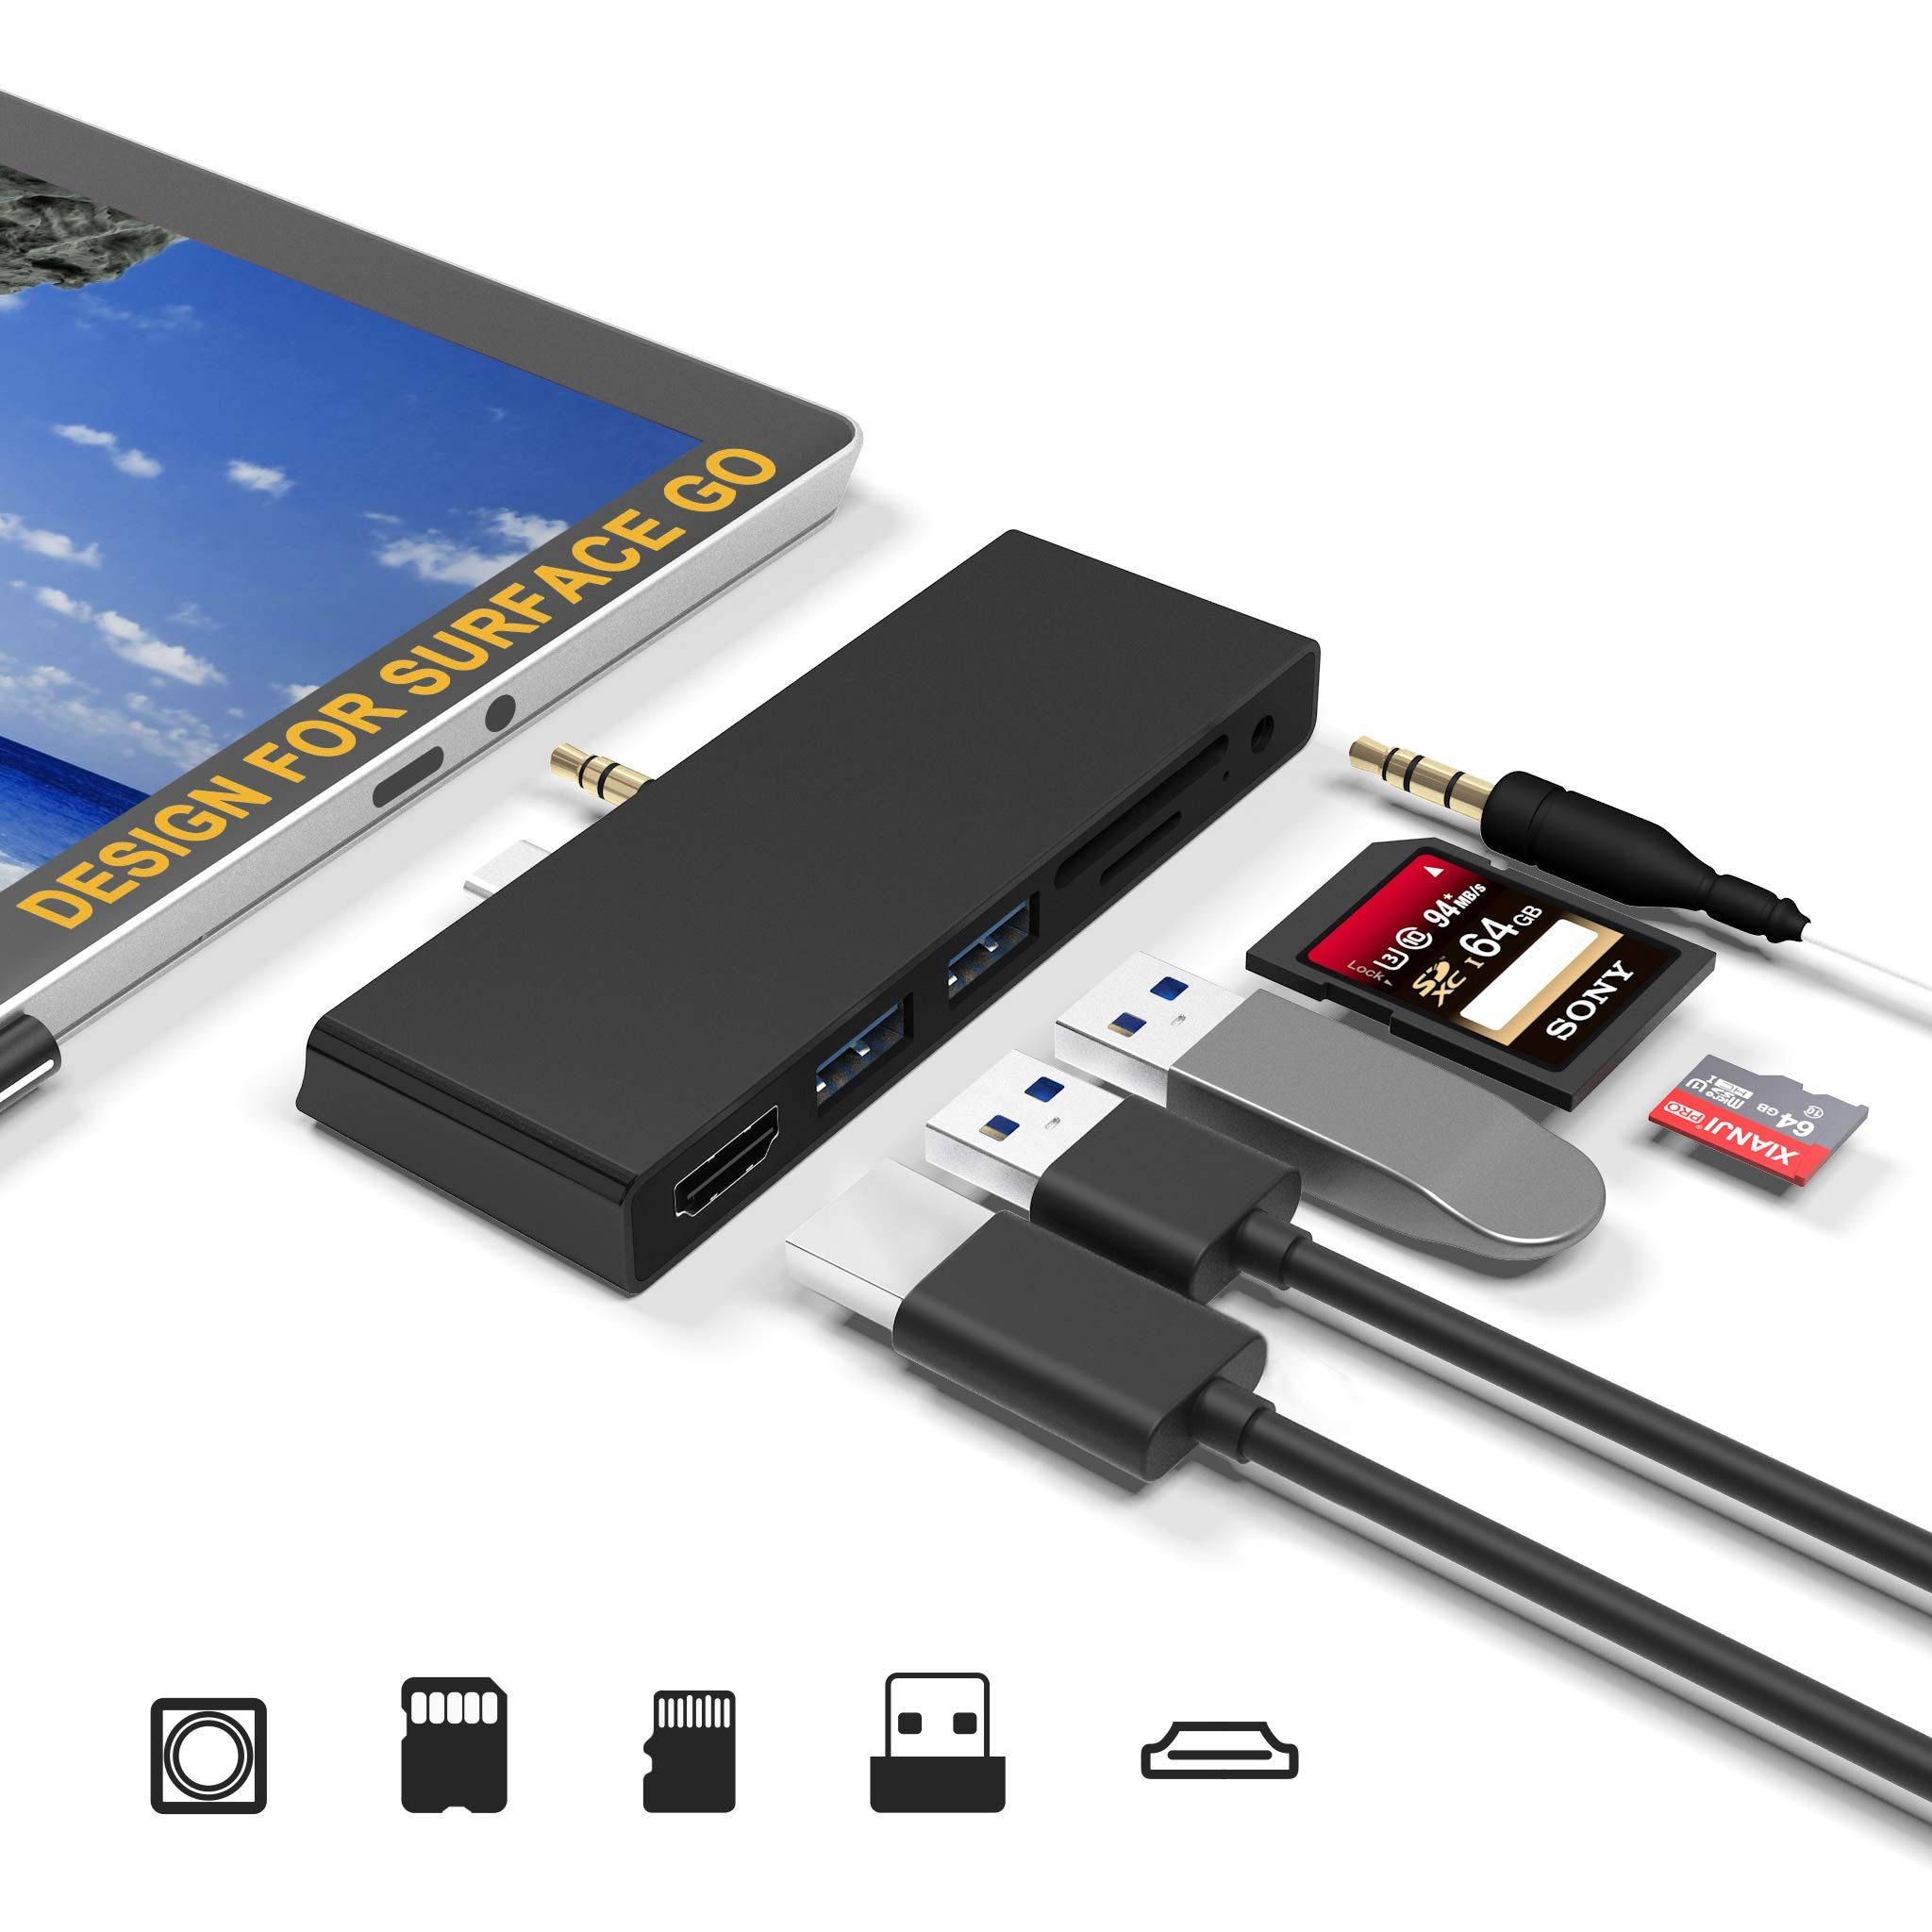 Surface Go/Go 2 USB C Hub Docking Station,7-in-2 Surface Go/Go 2 Adapter,Surface Go Accessories with 4K HDMI, 2 USB 3.0 Ports, 3.5mm Earphones Jack, SD/TF Card Slot